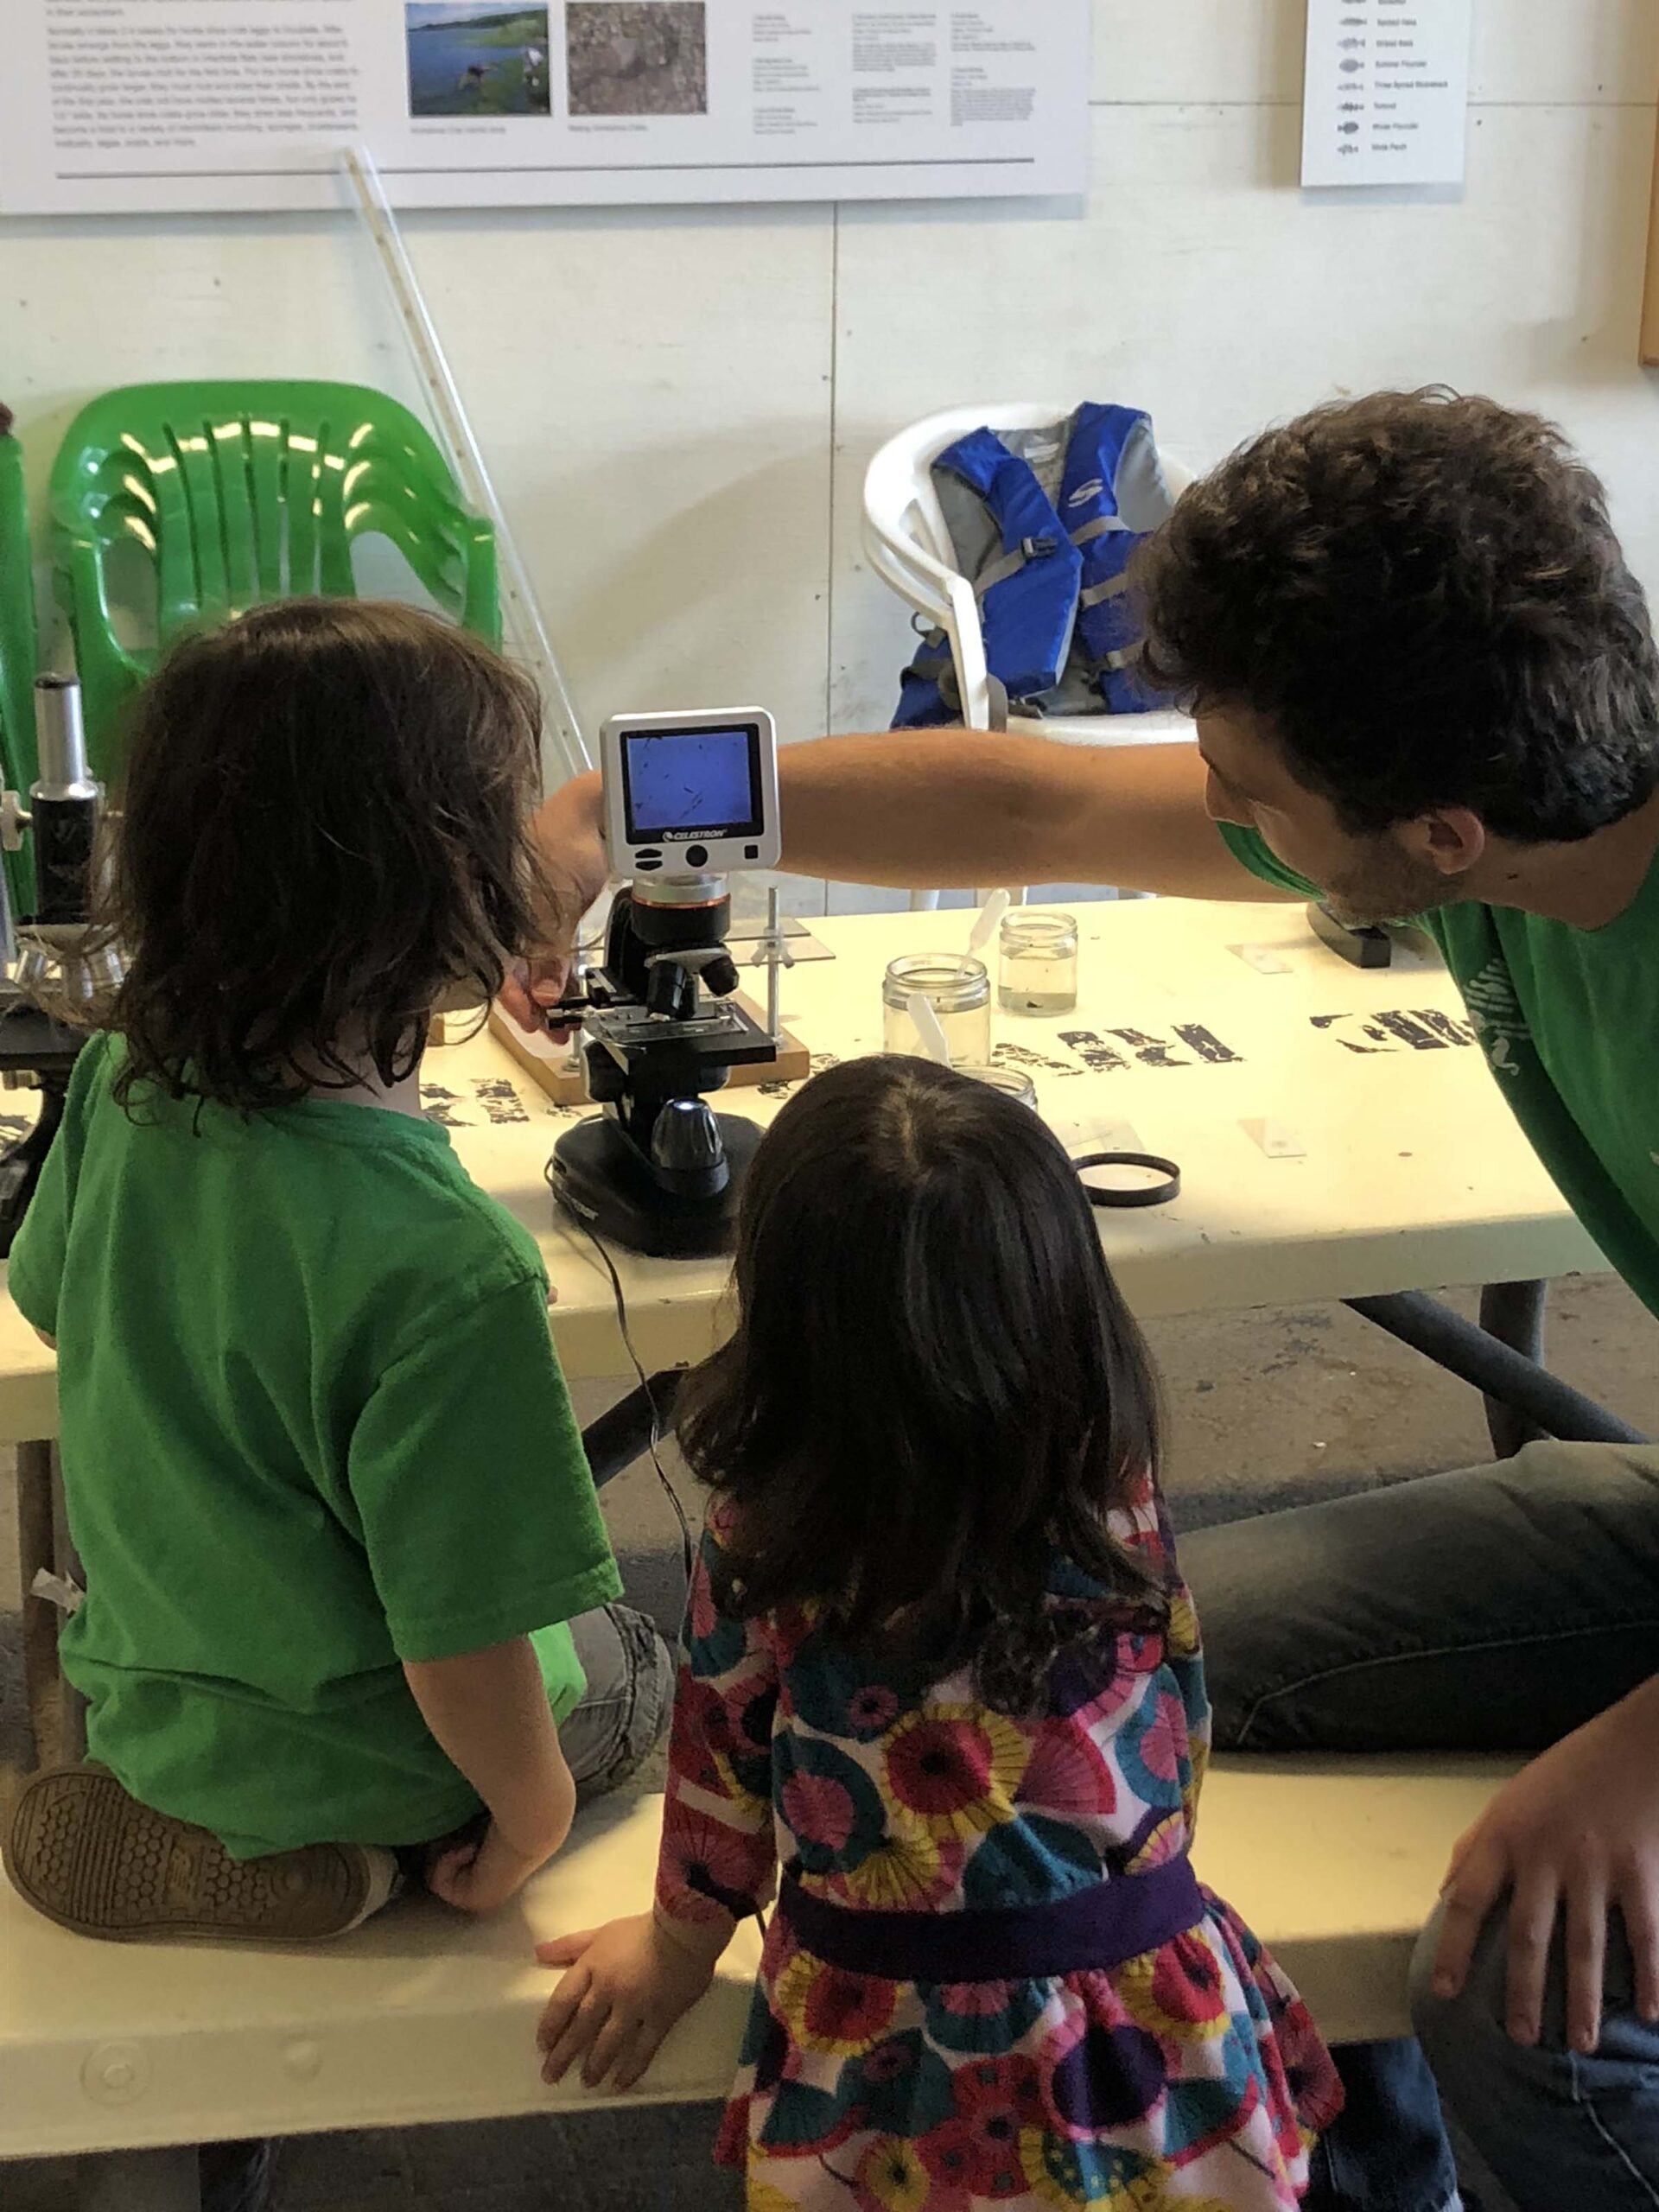 In the wetlab, two children look at the microscope at the findings from the day